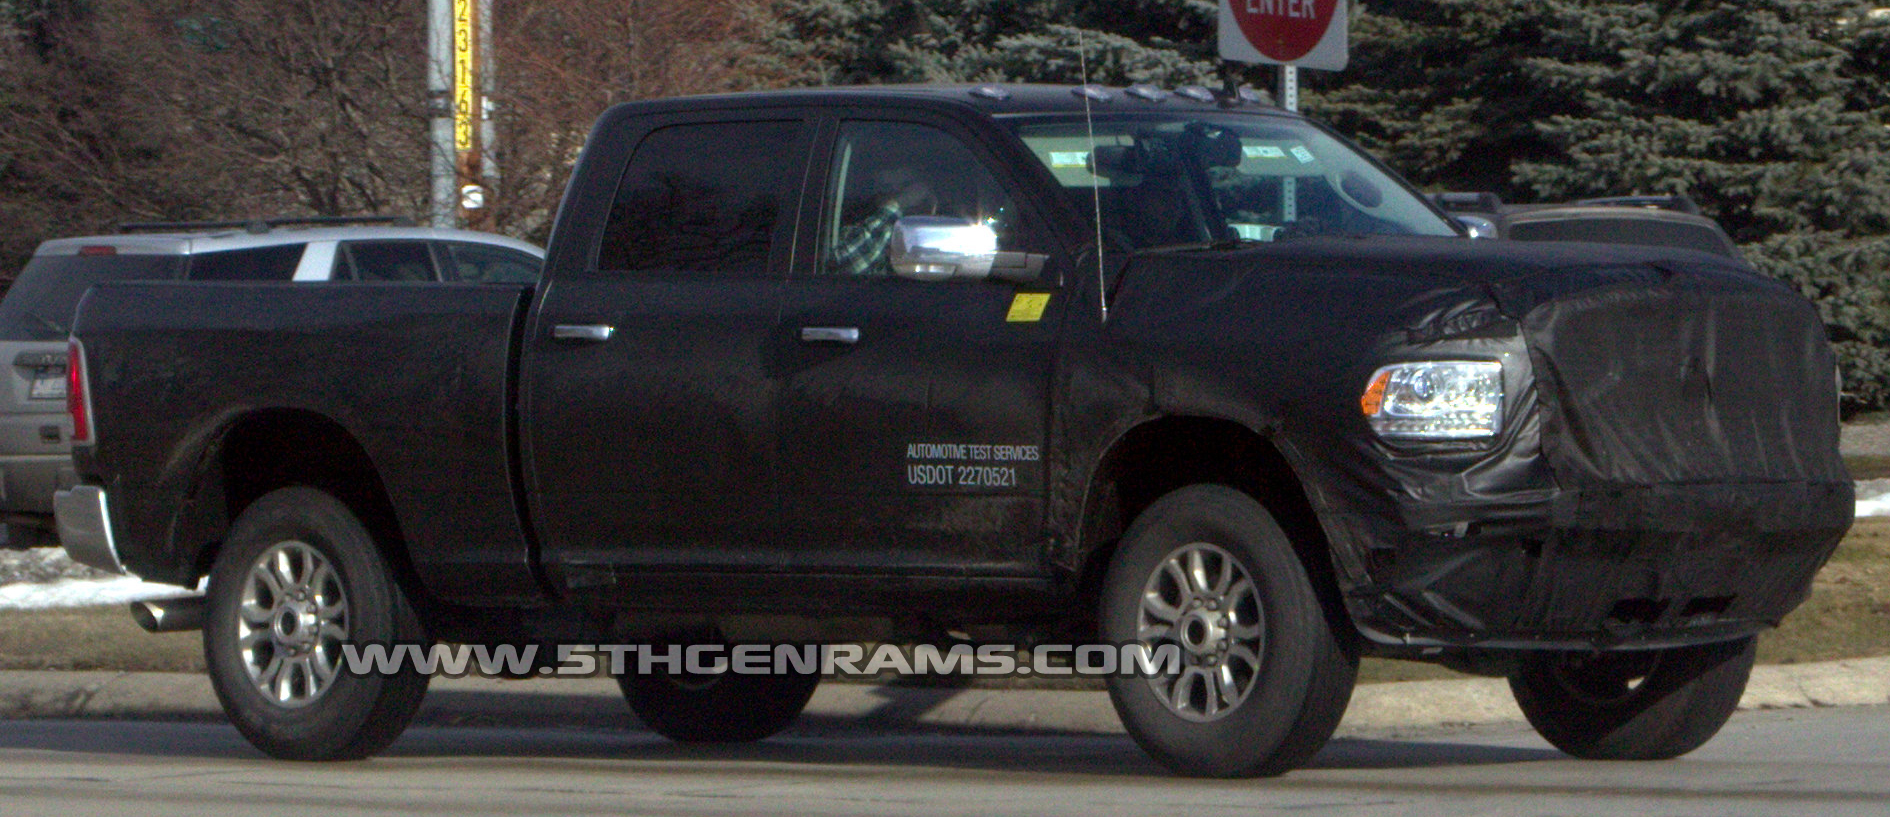 2019 Ram Hd >> 2019 Ram HD trucks spied - 5th Gen Rams